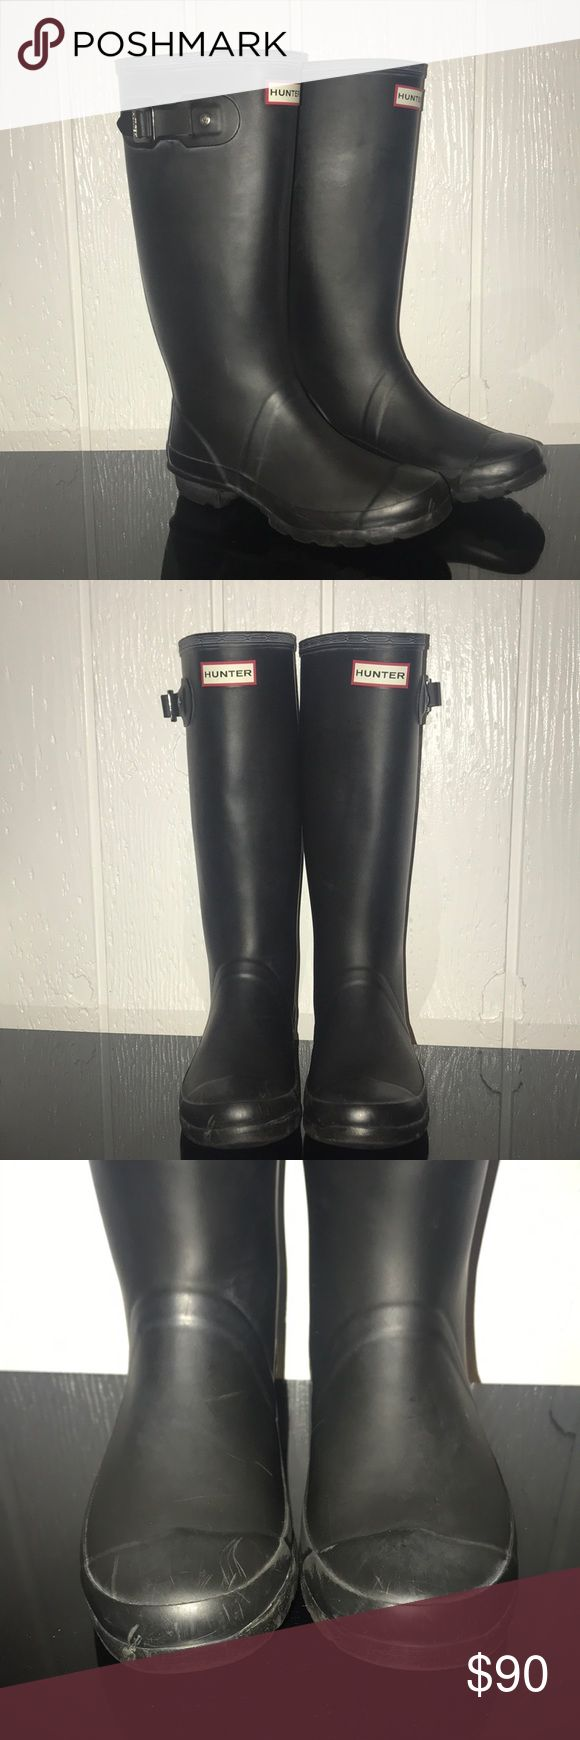 """Hunter Huntress Rain Boots with Fleece Liner Gently Used Condition (scuffs pictured) Matte Black Hunter """"Huntress"""" (Wide Calf) Boots. Great for those with large calves. Women's size 7. No box. Includes grey/purple fleece liners in a size Medium (shoe sizes 5-7)  Will Consider All Offers! Hunter Boots Shoes Winter & Rain Boots"""